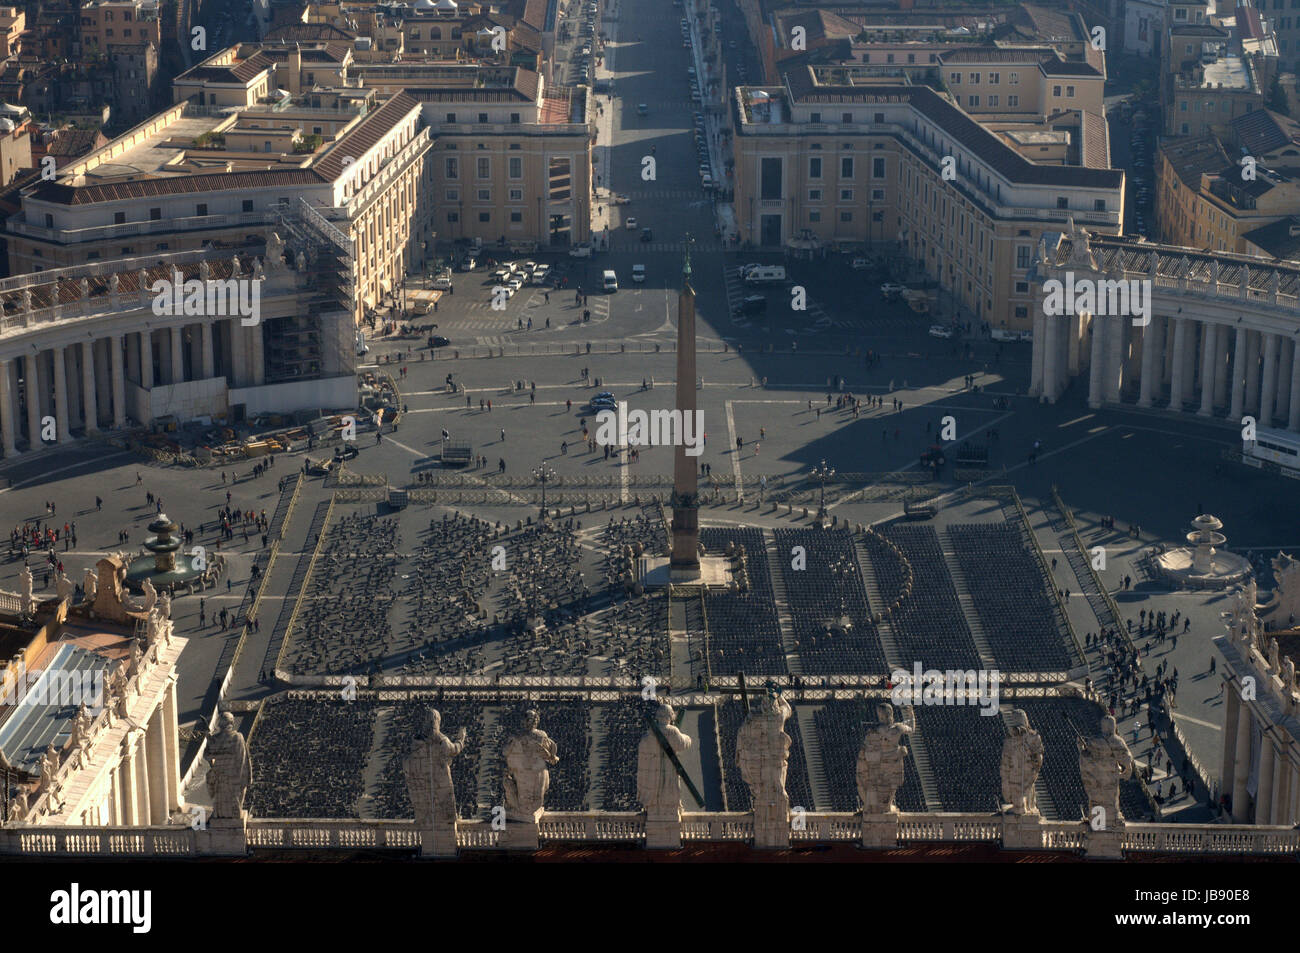 st peter square on wednesday Stock Photo